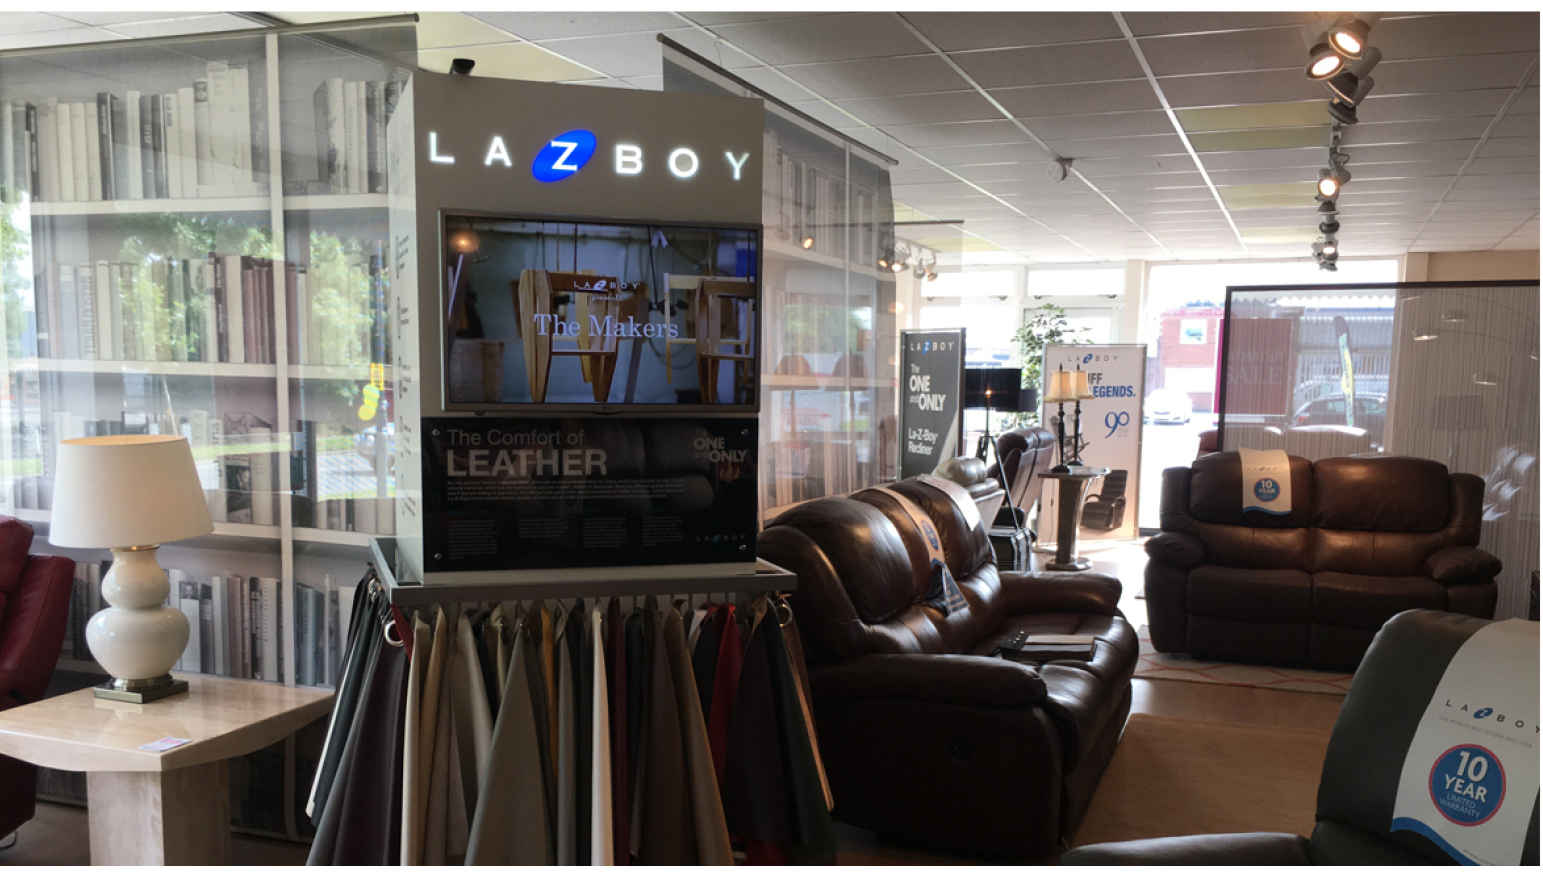 photograph of lazyboy retail column and concession in store